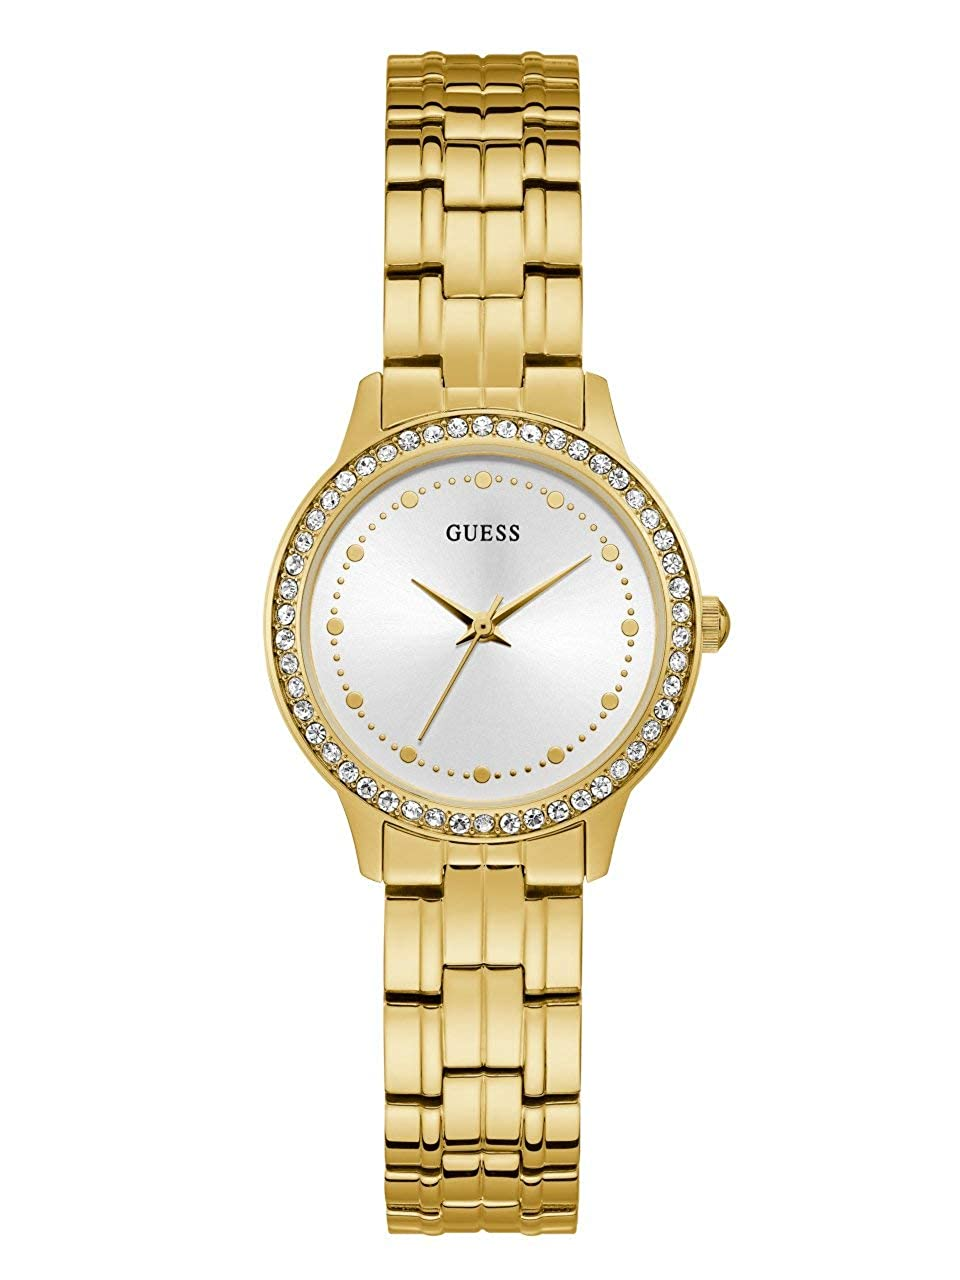 Casio Women s LTP1254D-1A Classic Analog Bracelet Watch